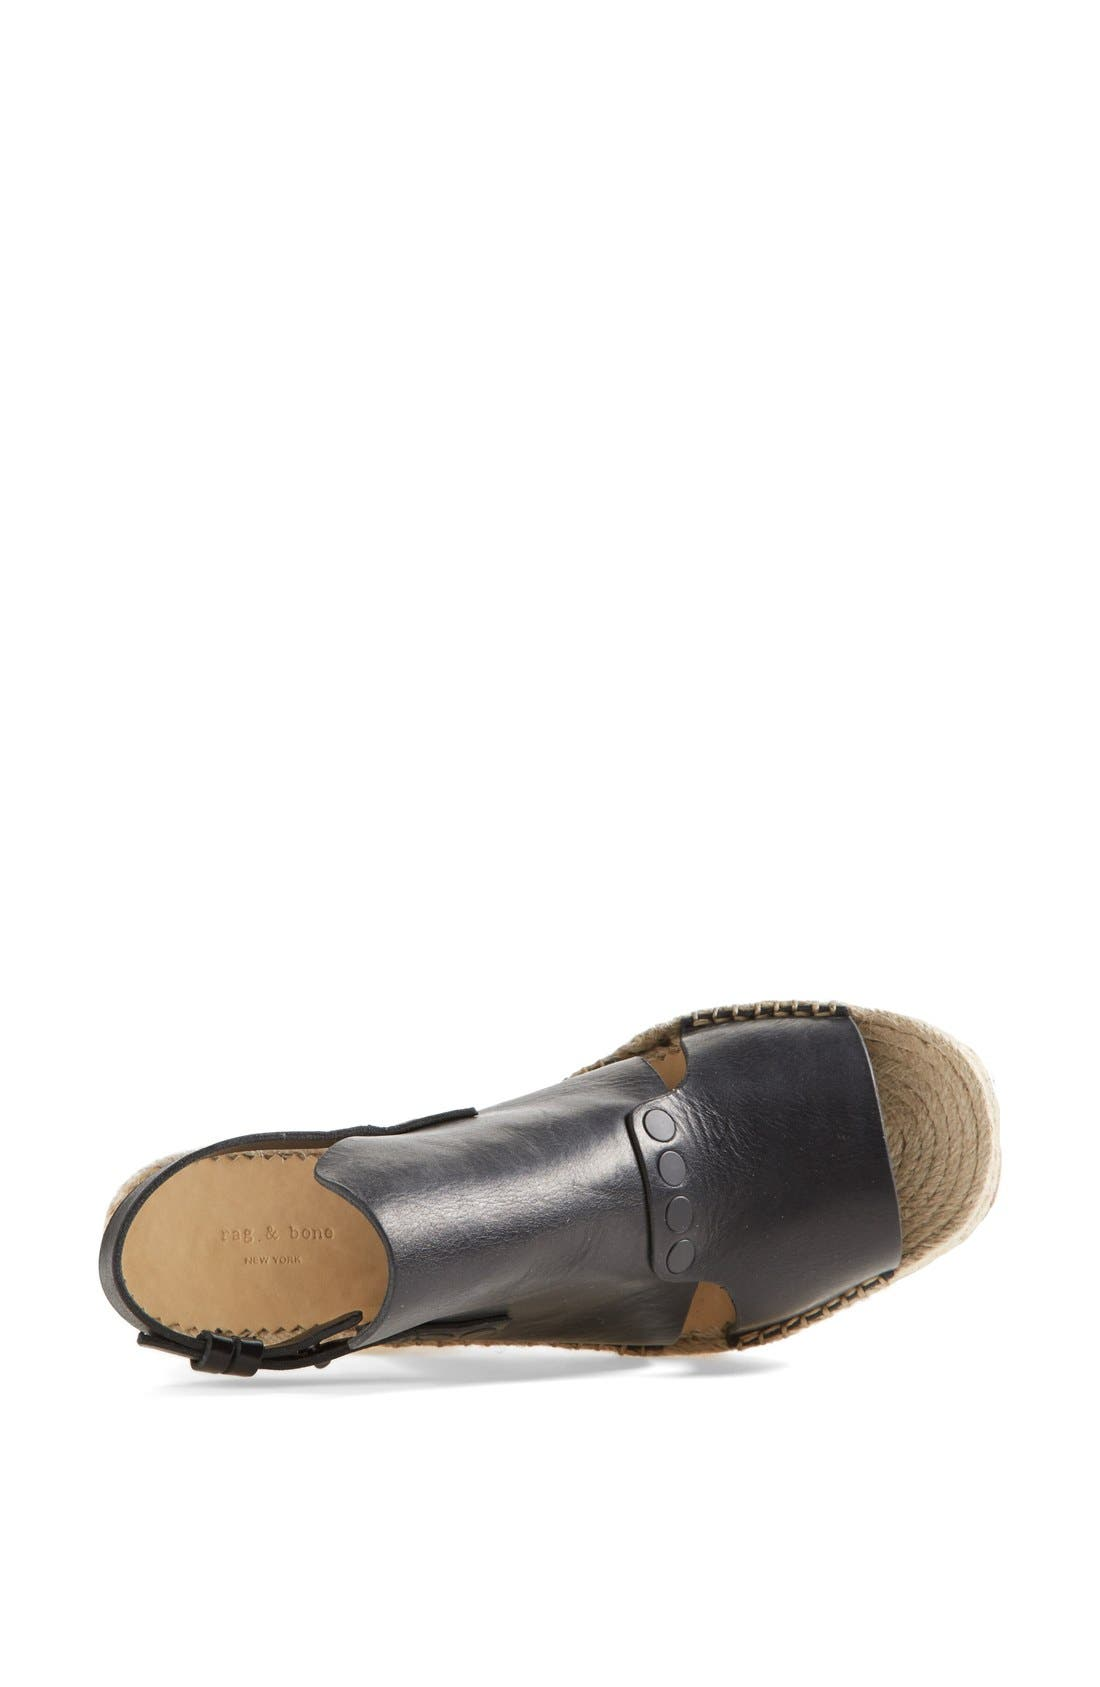 Alternate Image 3  - rag & bone 'Sayre II' Espadrille Wedge Sandal